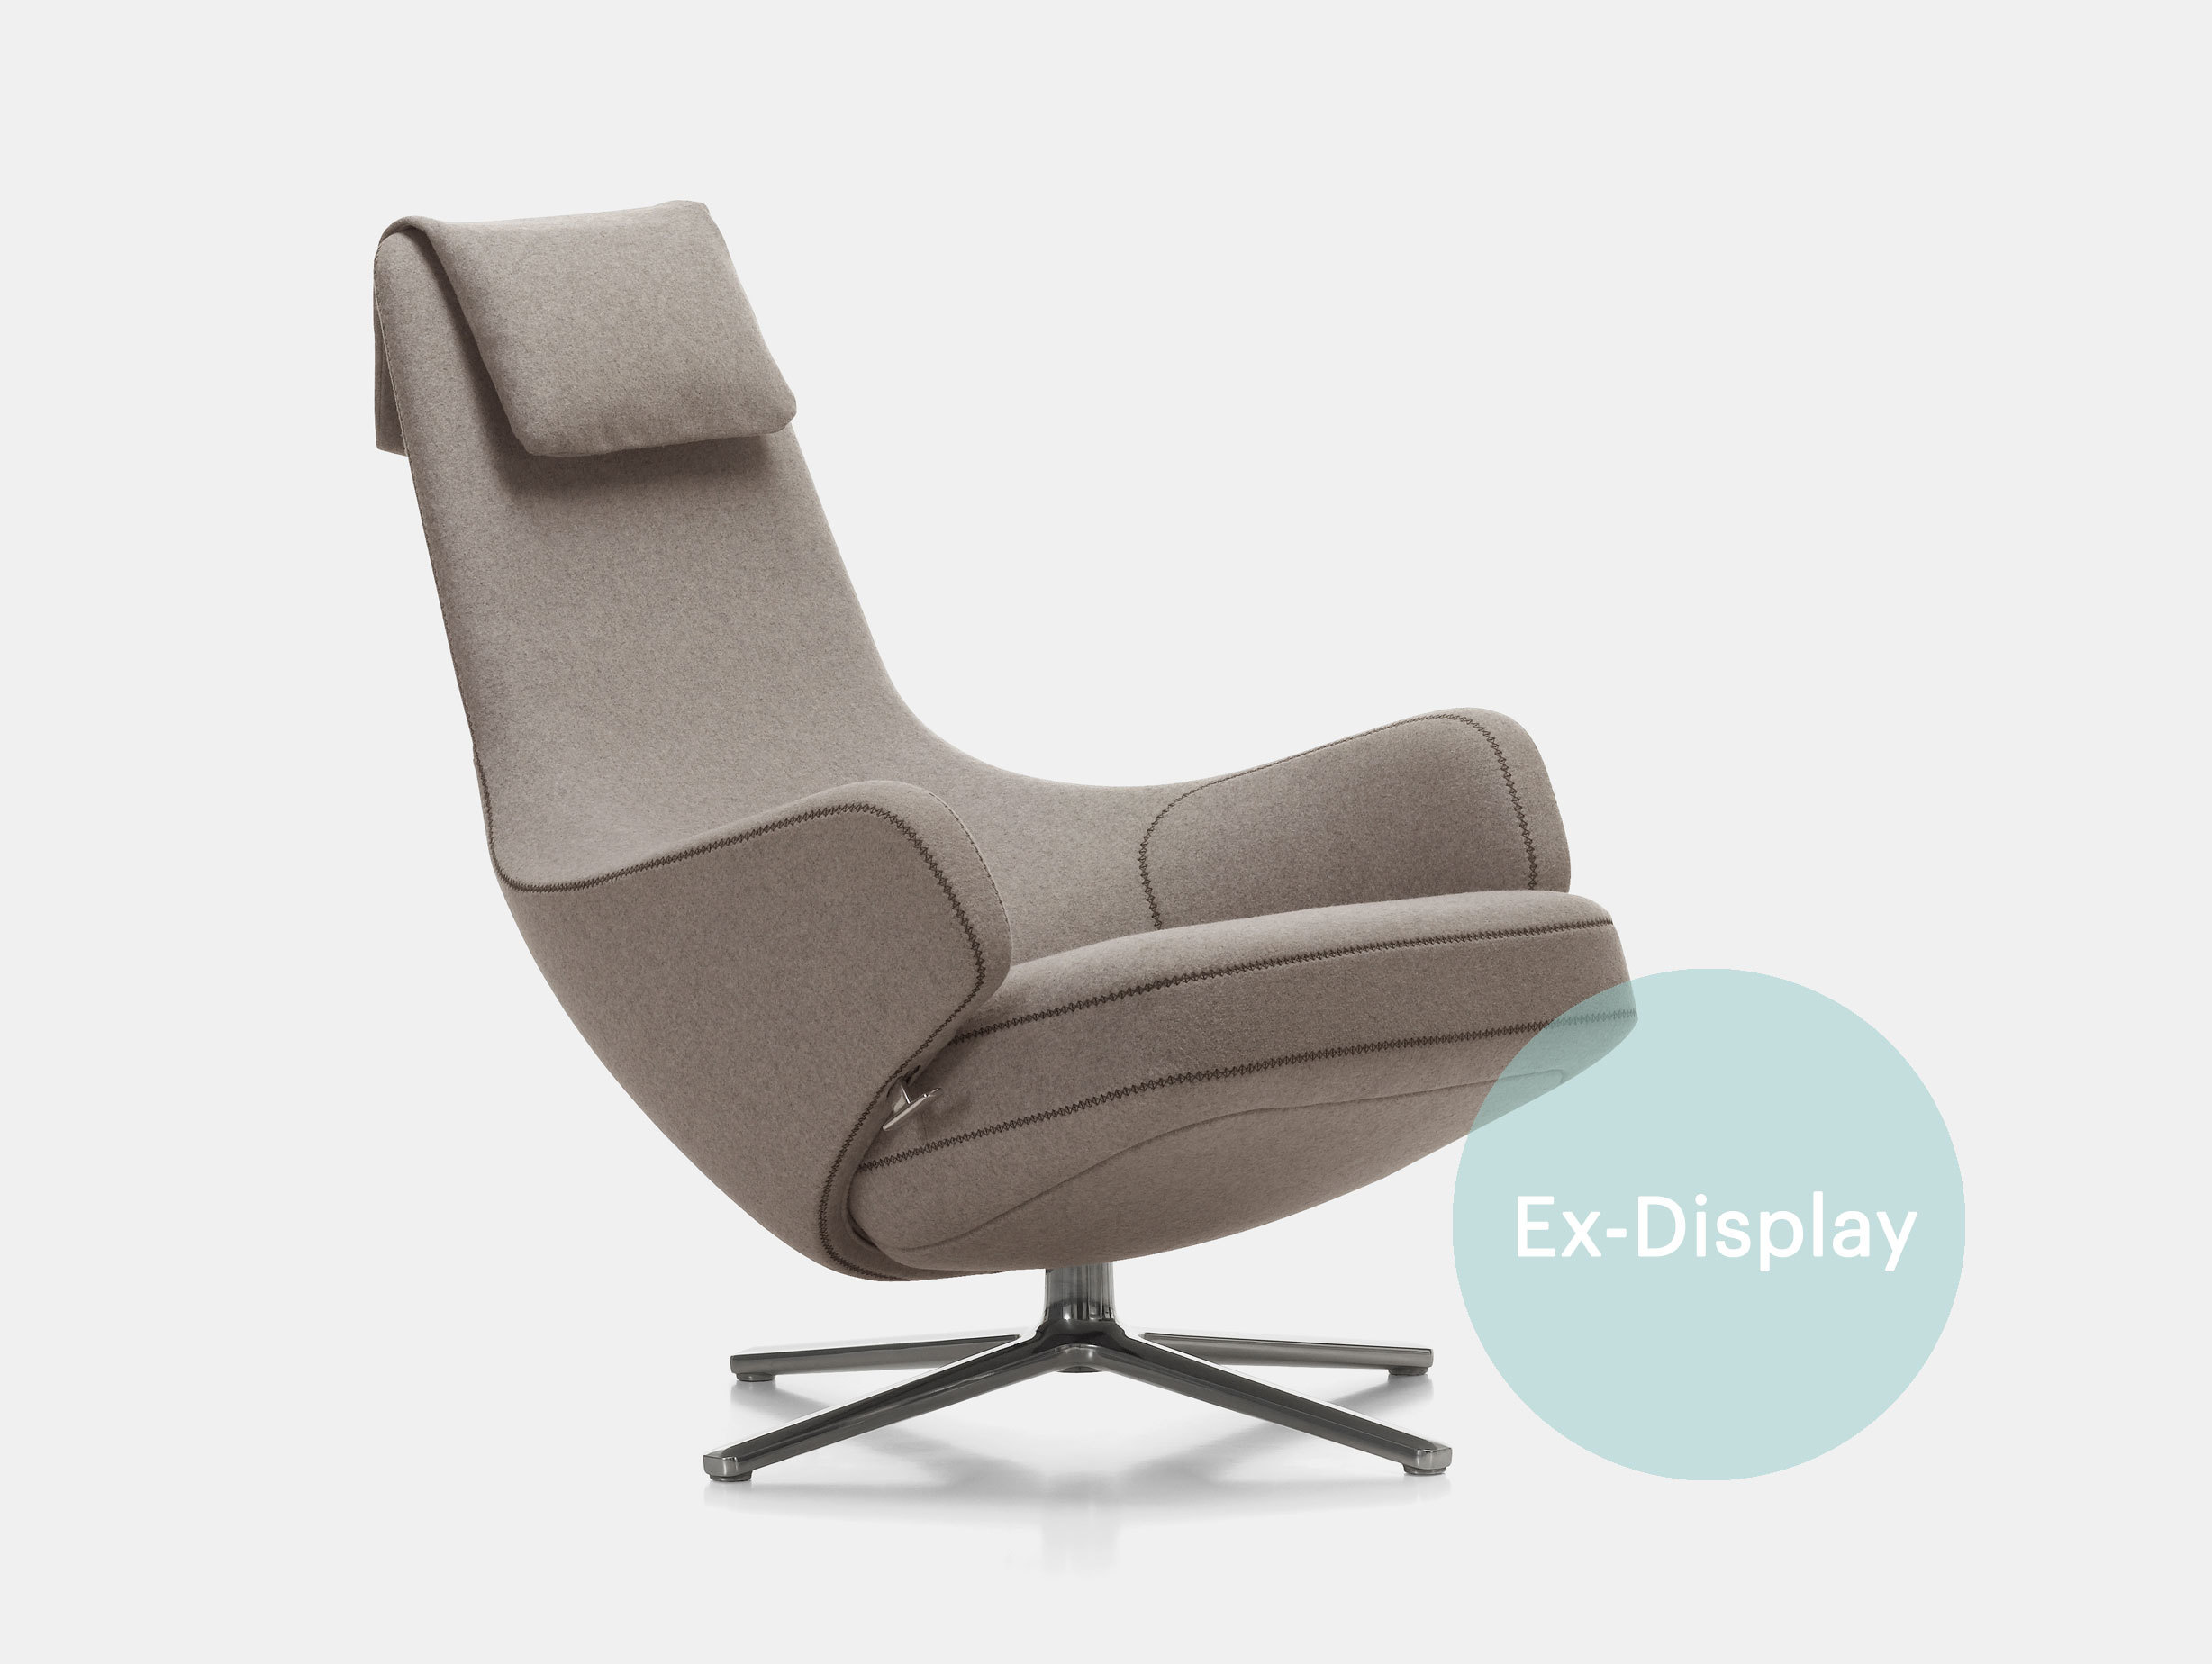 Vitra Repos Lounge Chair Ex Display